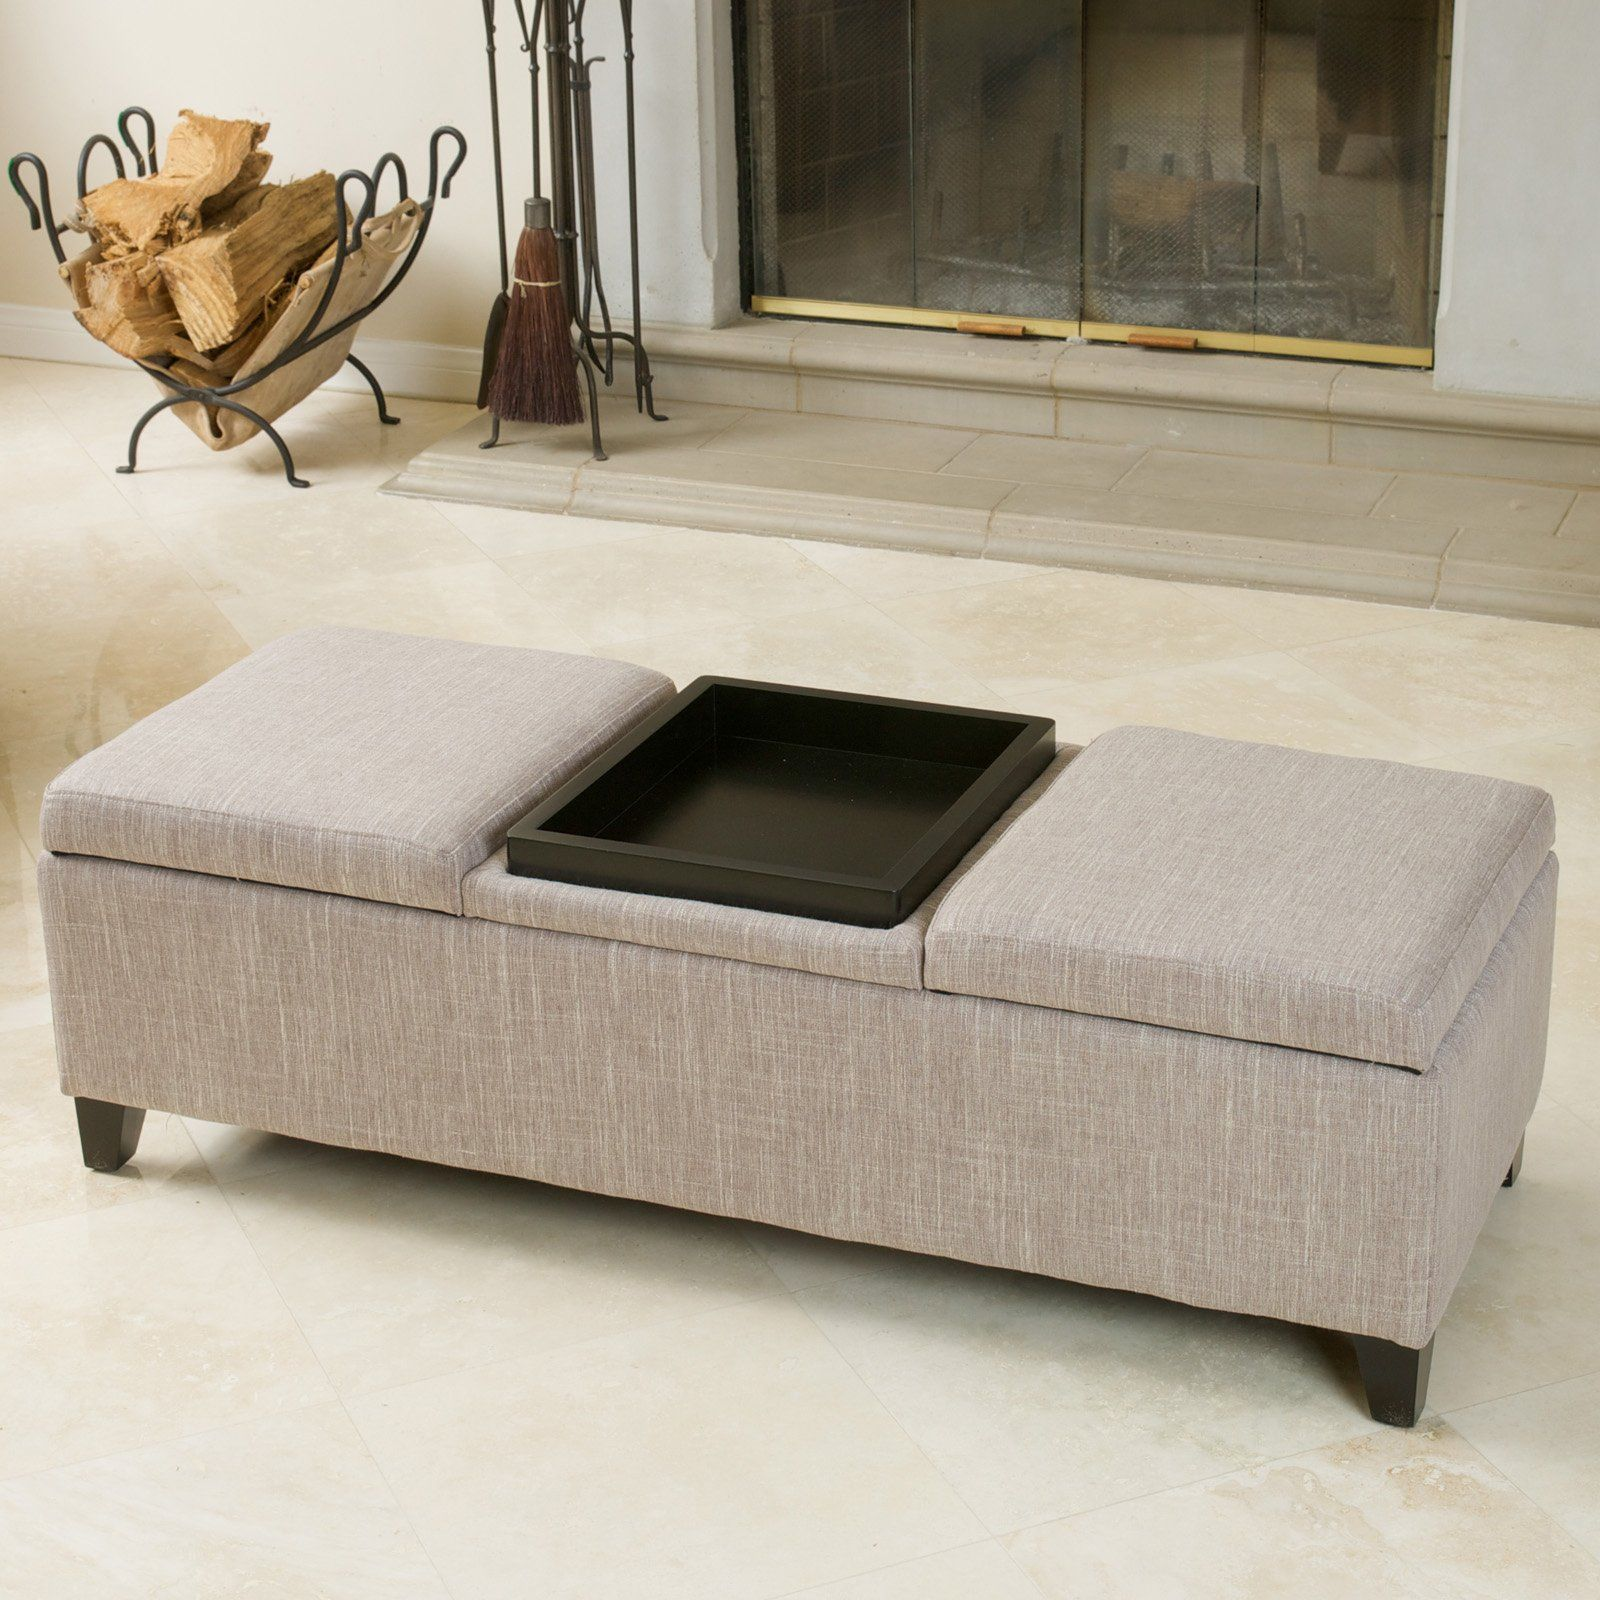 Have To Have It Harold Fabric Storage Ottoman 249 99 Leather Storage Ottoman Fabric Storage Ottoman Storage Ottoman [ 1600 x 1600 Pixel ]